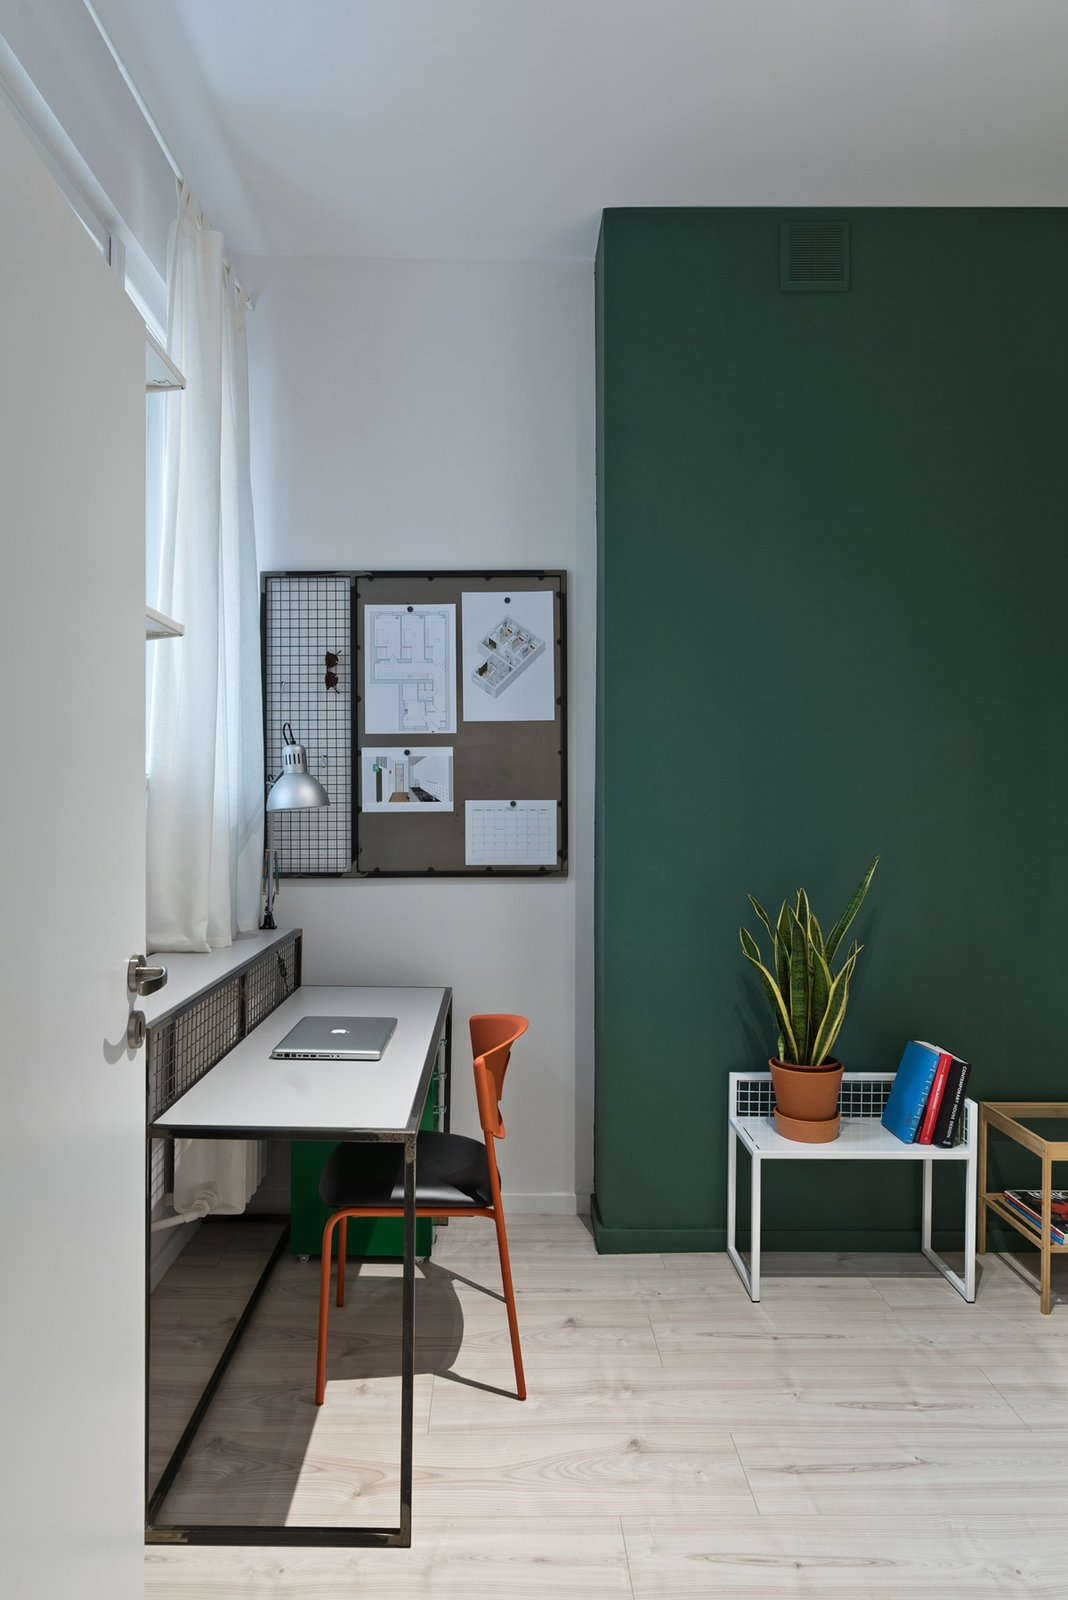 One student bedroom features the second green accent wall. Each bedroom is about 140 square feet and includes places for sleeping and studying, plus built-in IKEA wardrobes. The custom desk is paired with an orange IKEA chair. The small metal accent table and magnetic wall board are also by Wierciński.  Our Dorm Definitely Did Not Look Like This by Sarah Akkoush